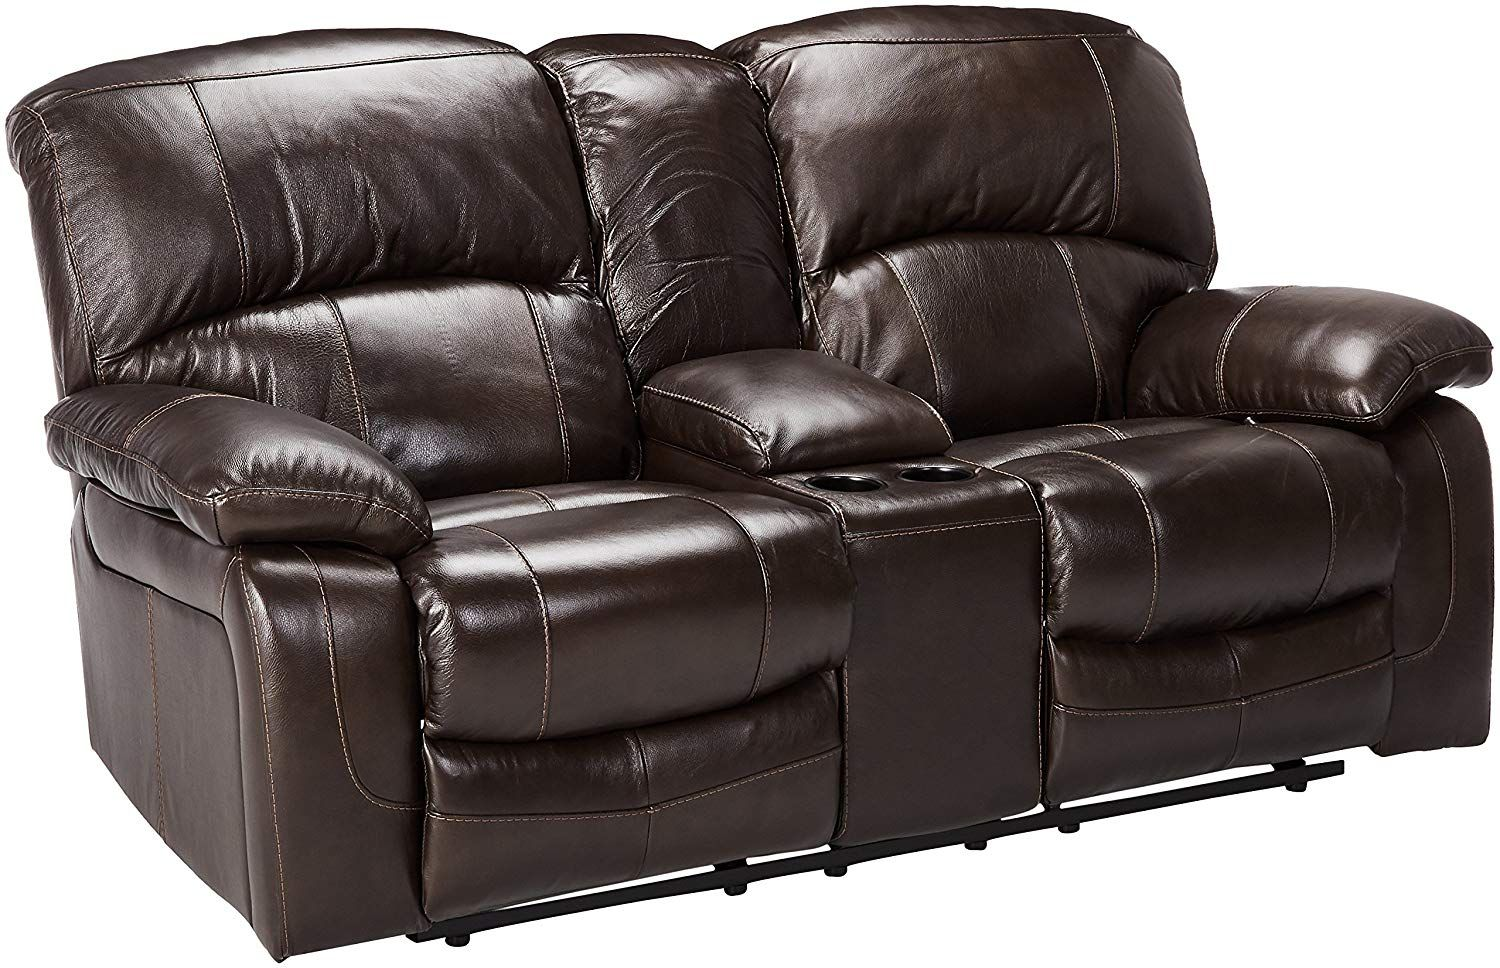 Ashley Furniture Signature Design Damacio Recliner Loveseat With